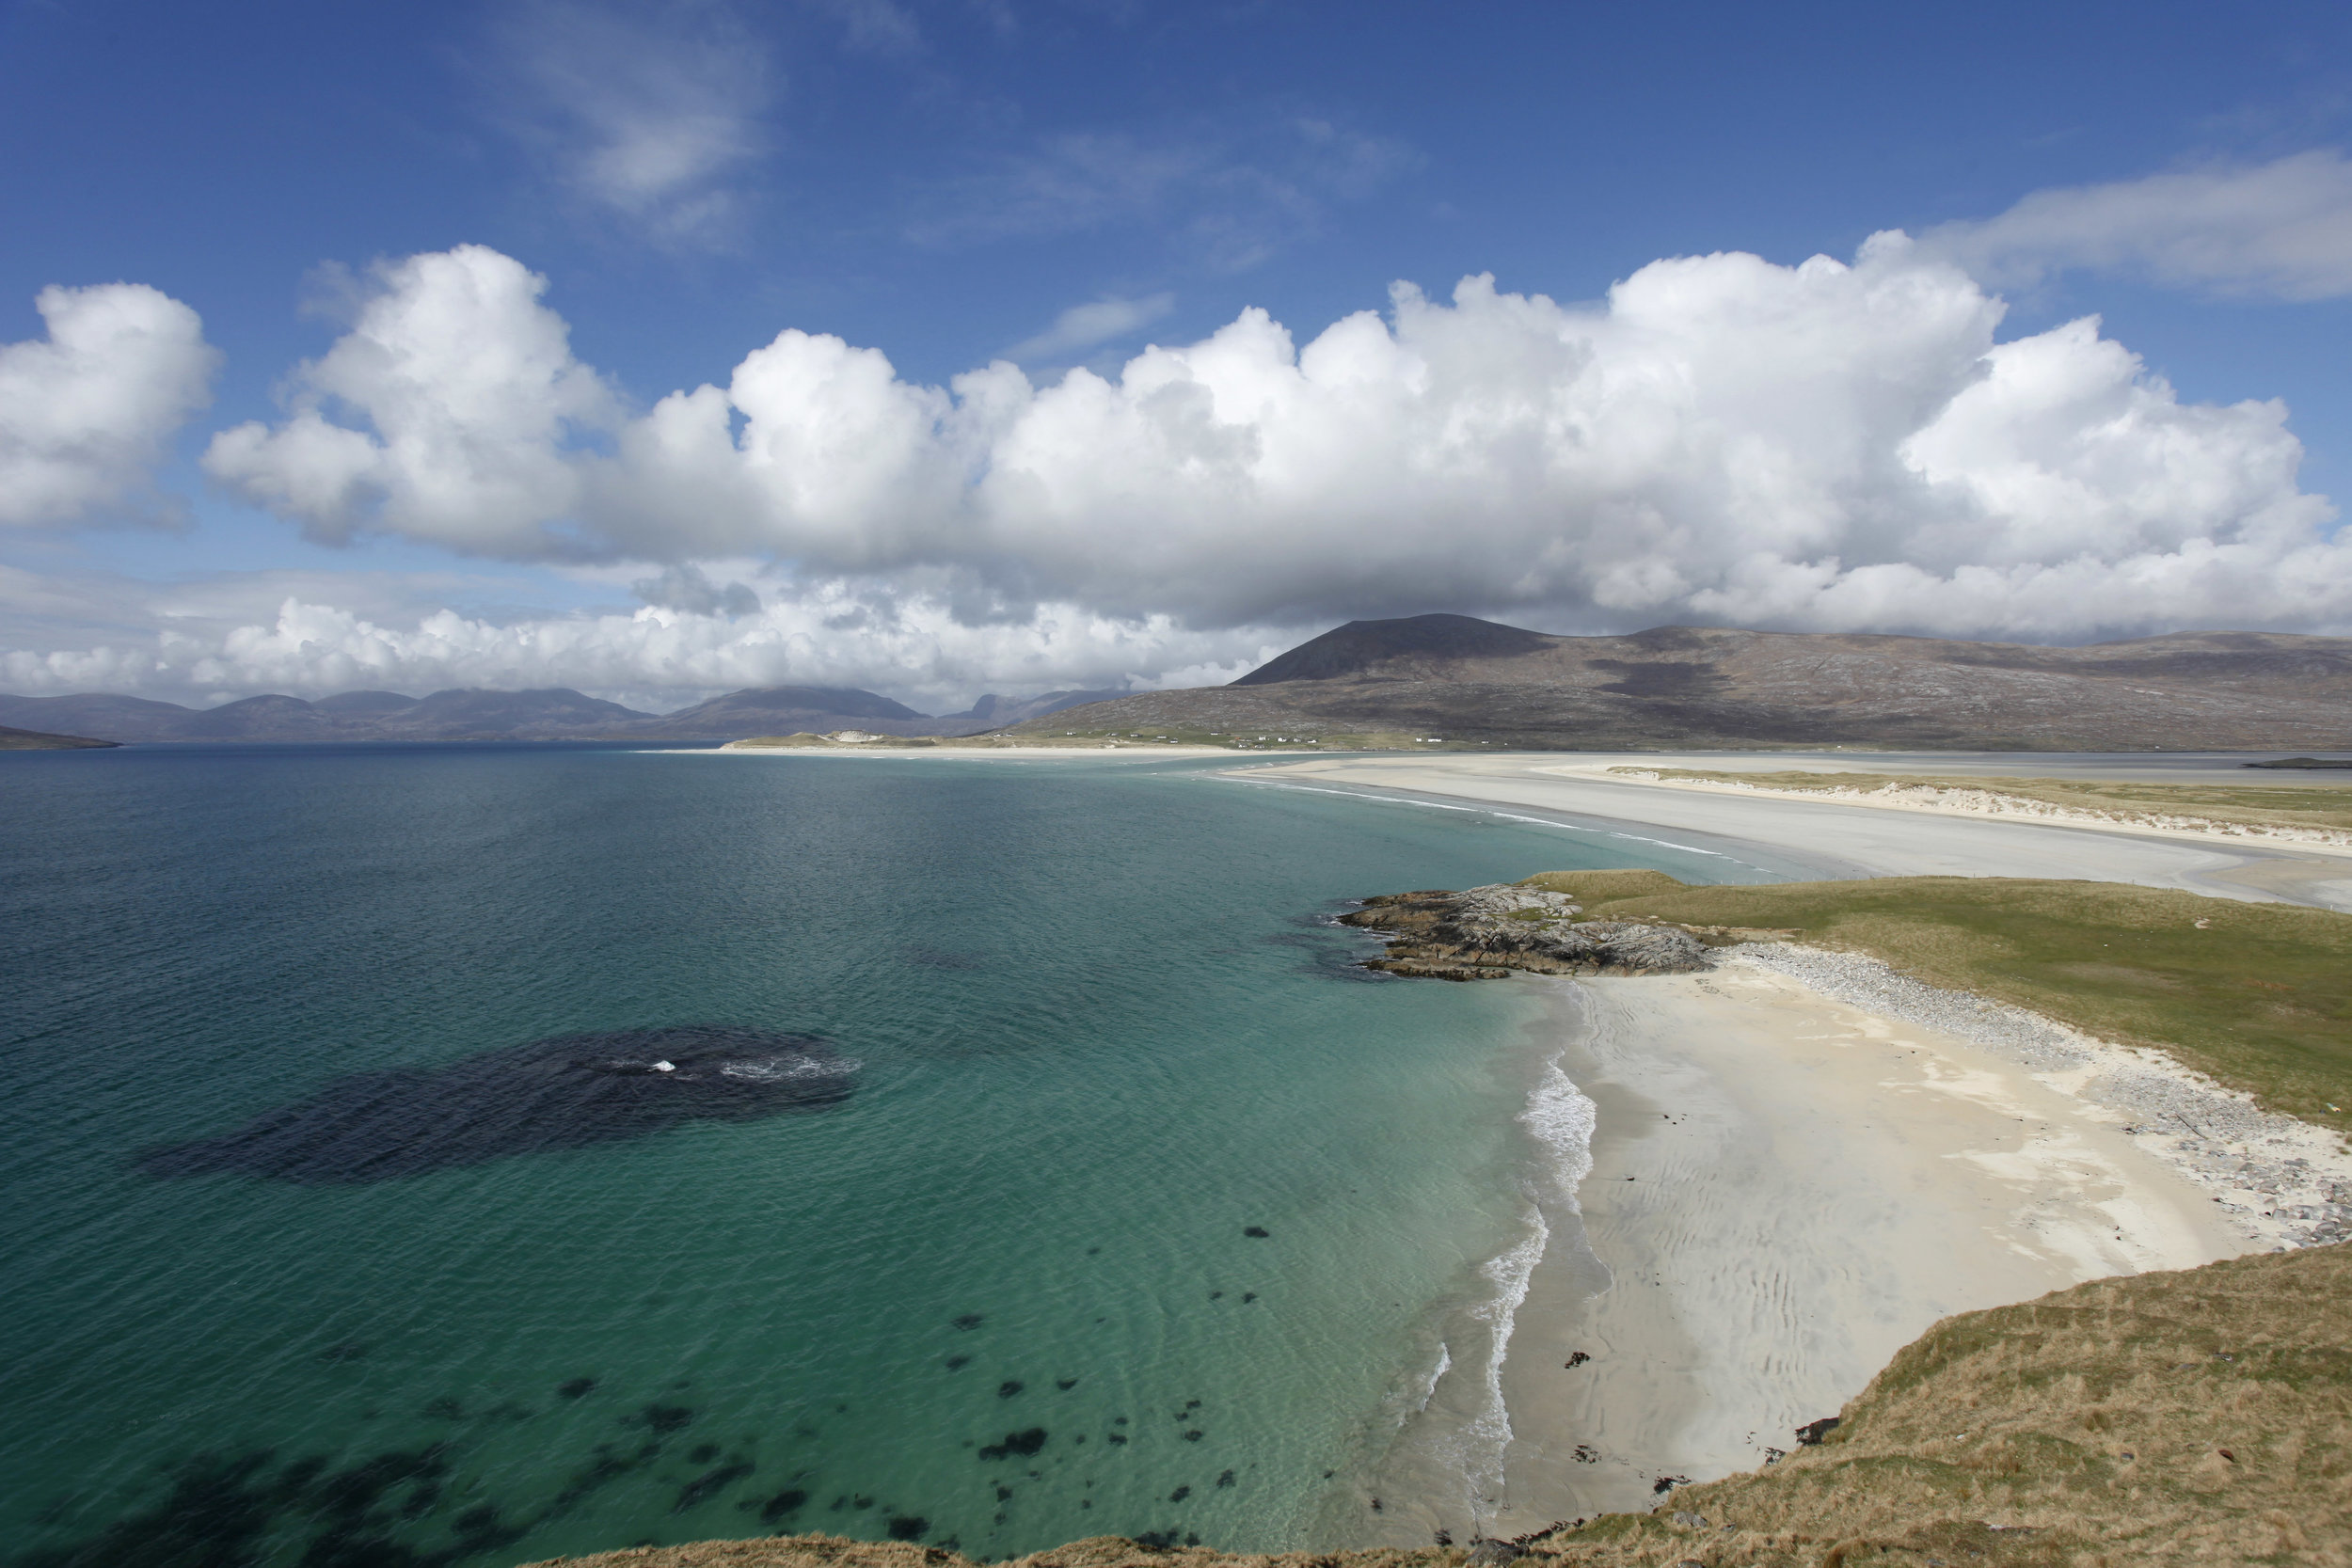 Luskentyre, Isle of Harris, Outer Hebrides  (VisitScotland / Paul Tomkins, all rights reserved)